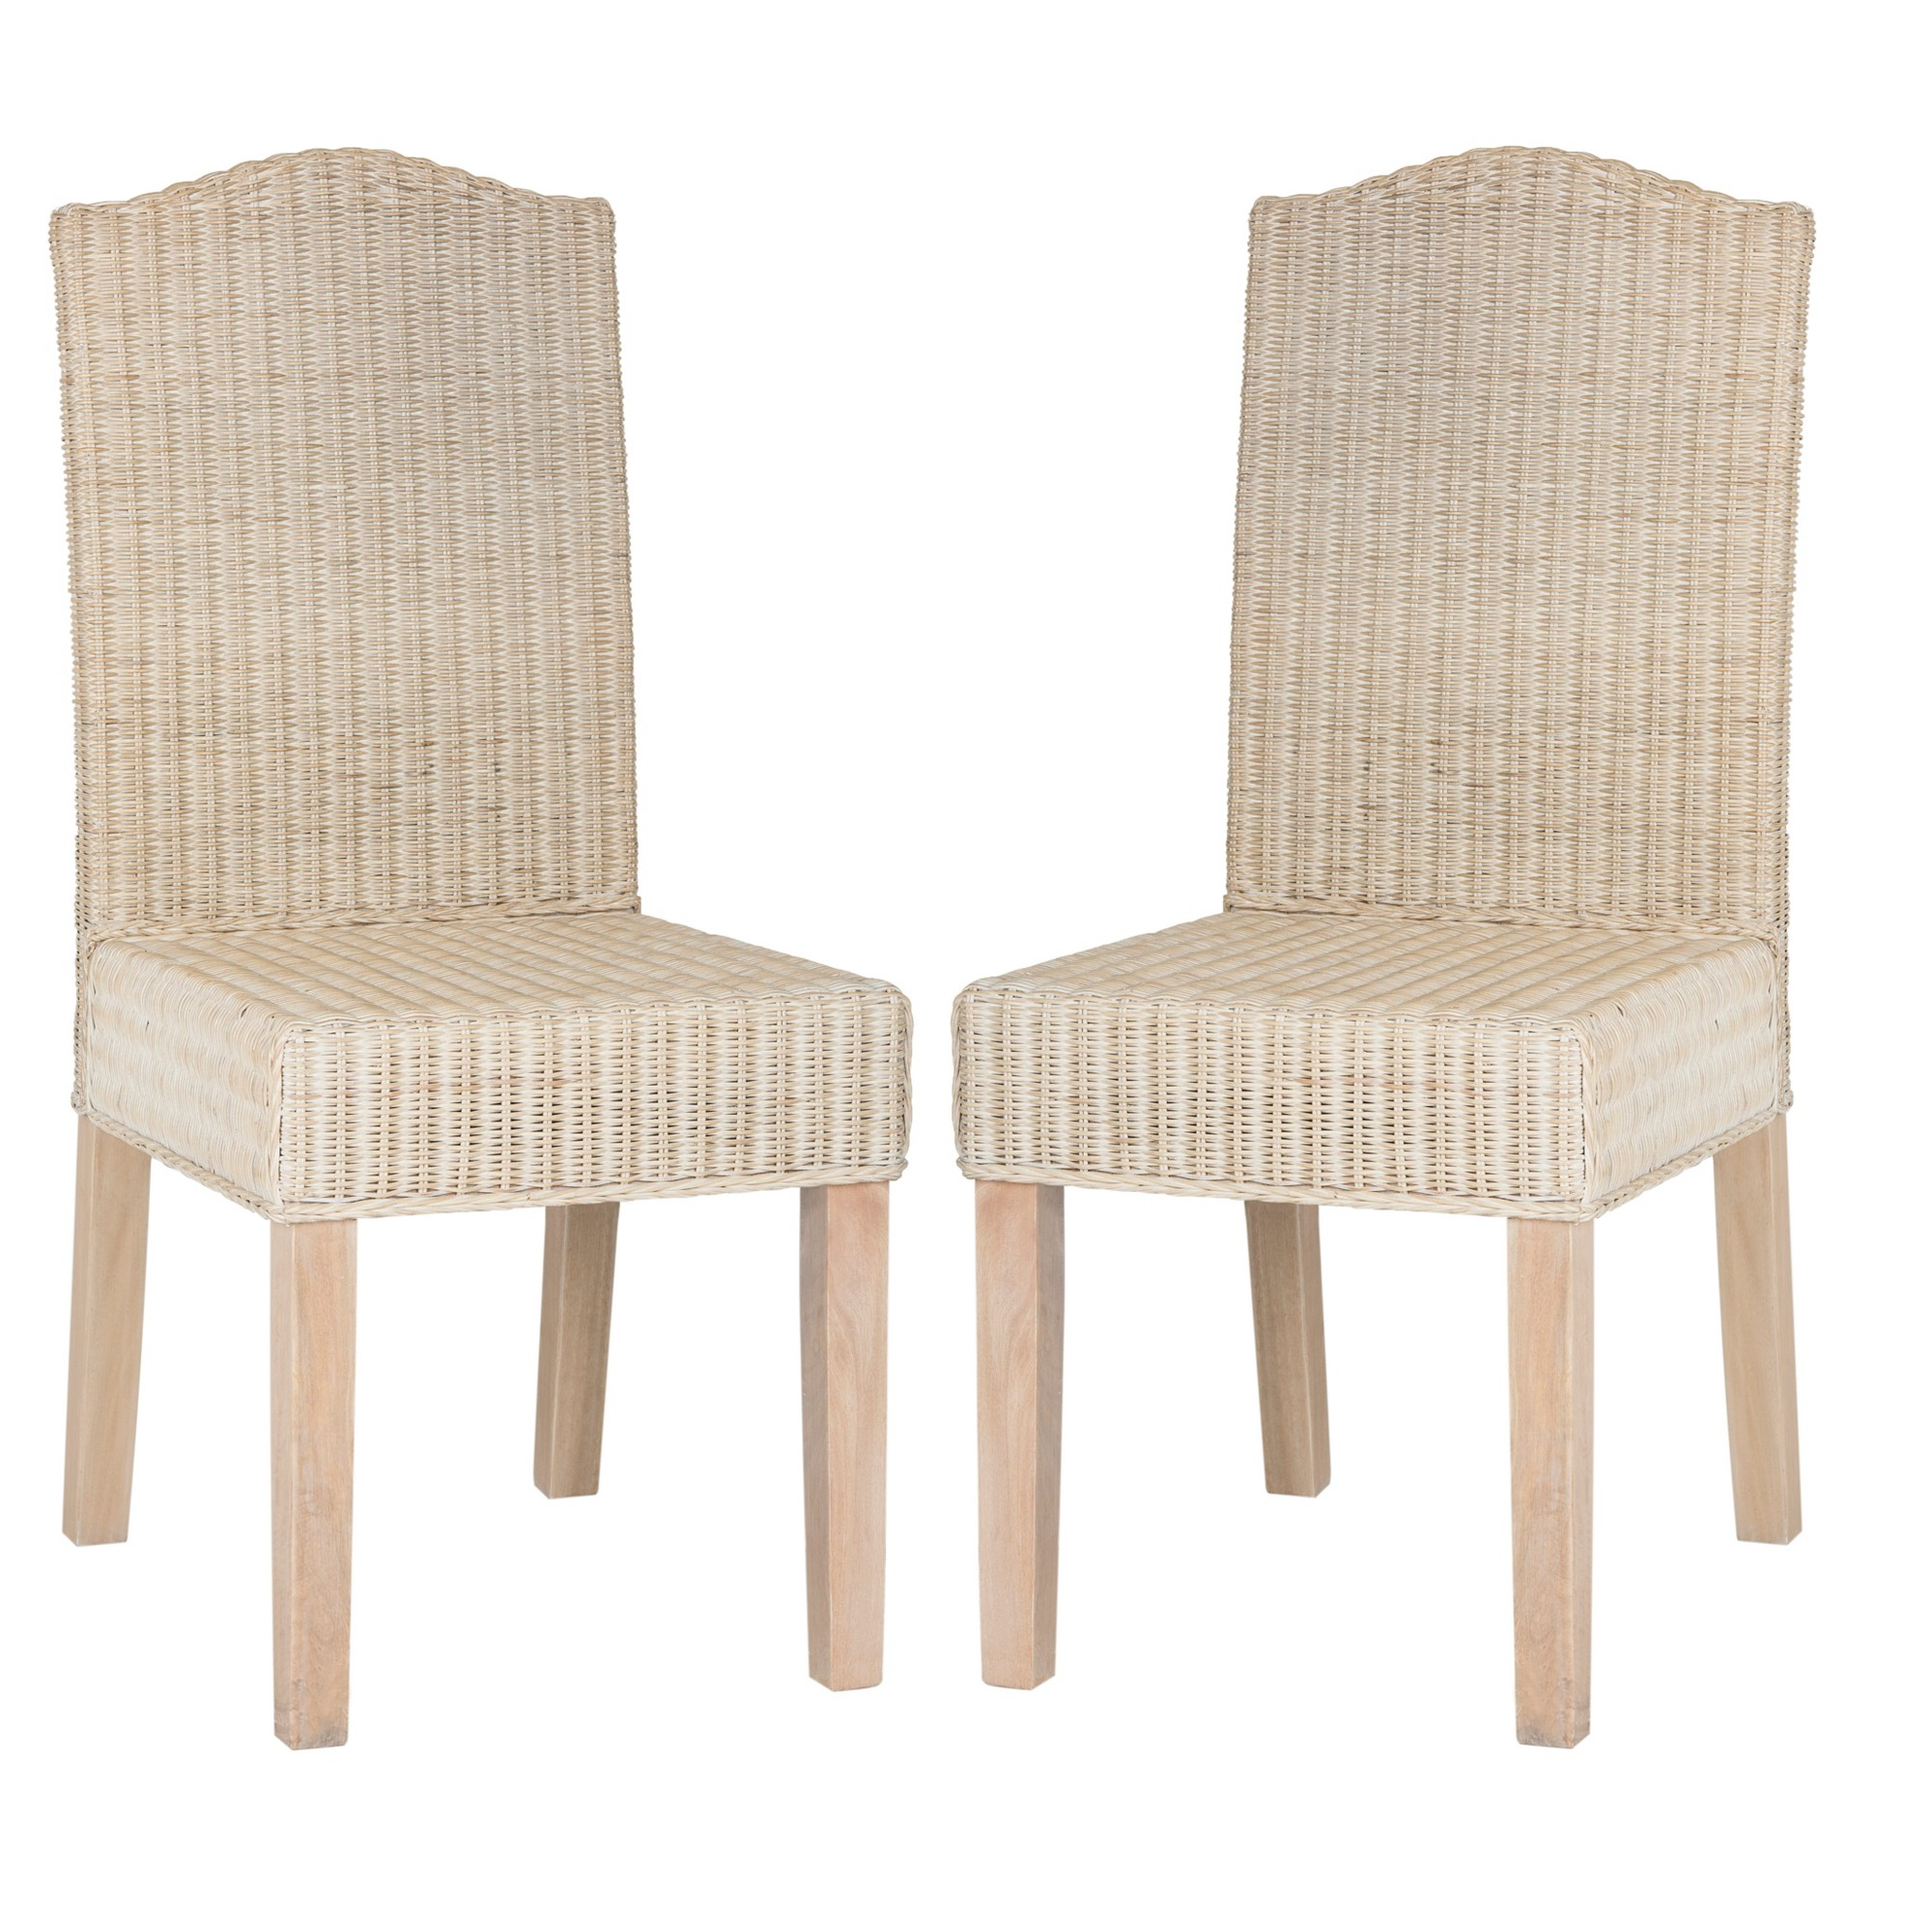 odette wicker dining chair white washed set of 2 safavieh